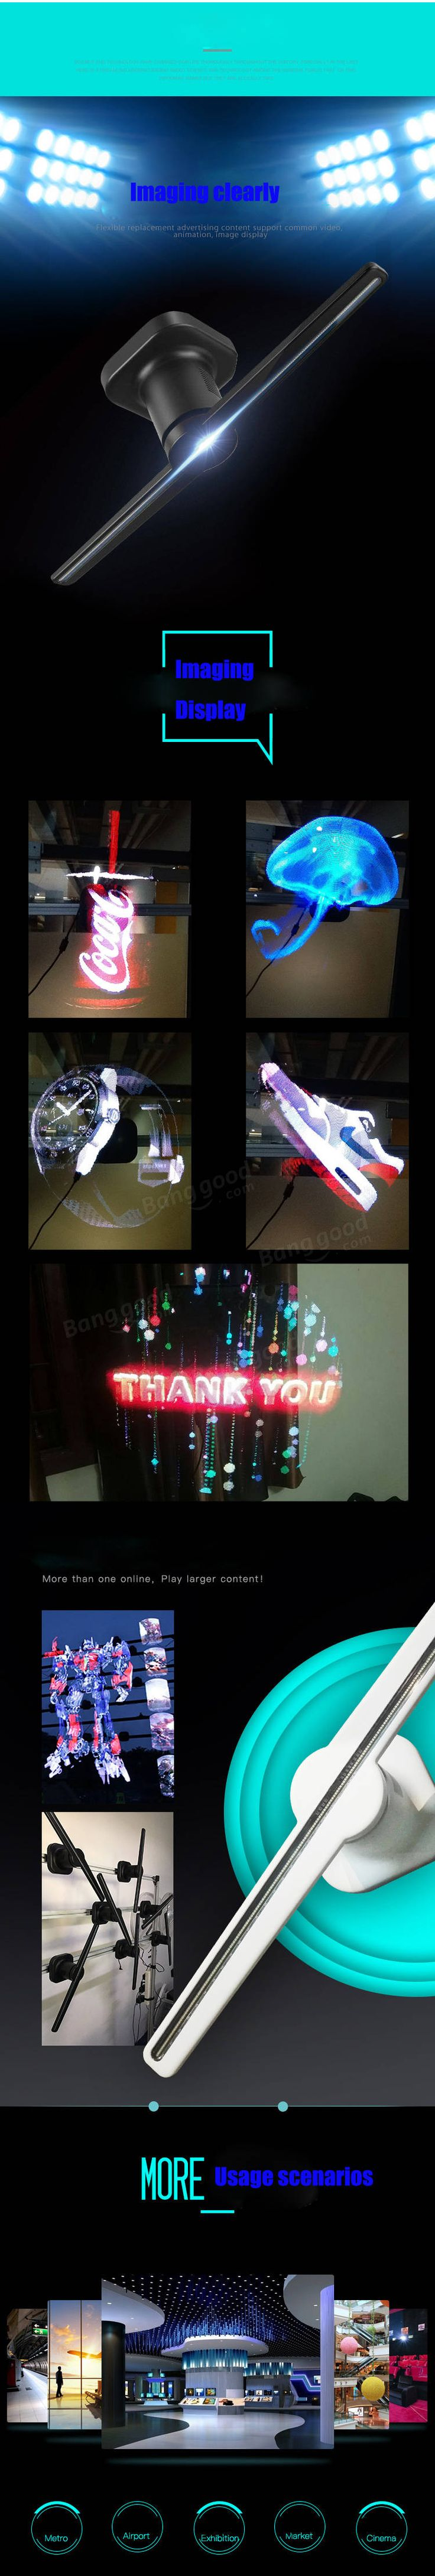 3D Spinning LED Holographic Fan Projection Creates Illusion Of 3D Hologram Graphics For Advertising